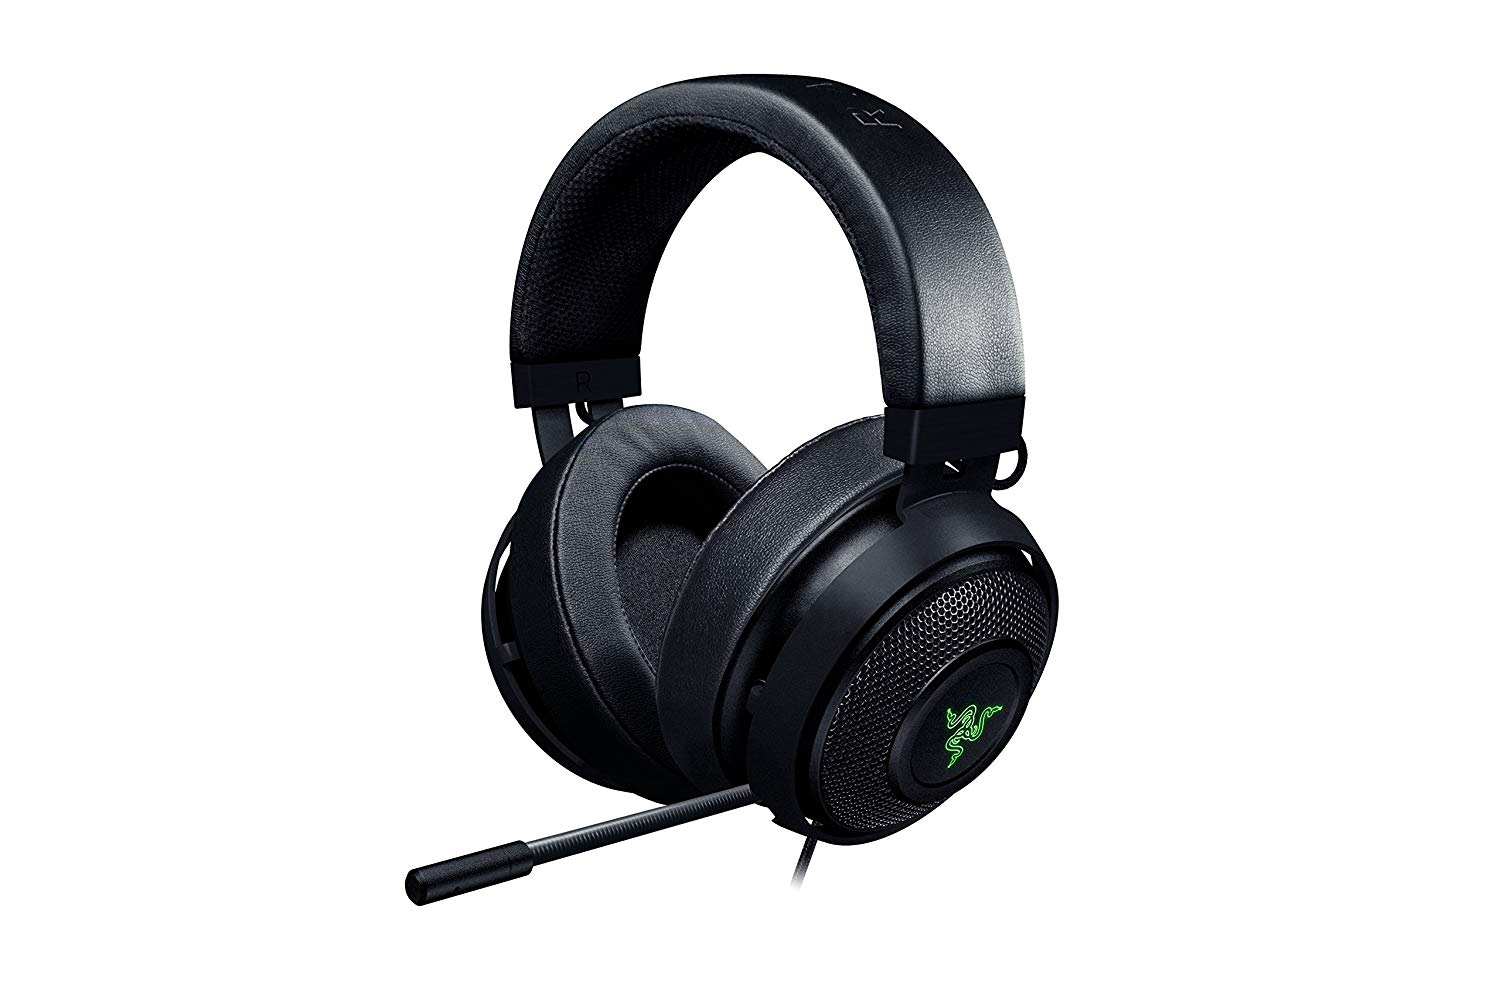 Razer Kraken 7.1 V2: 7.1 Surround Sound